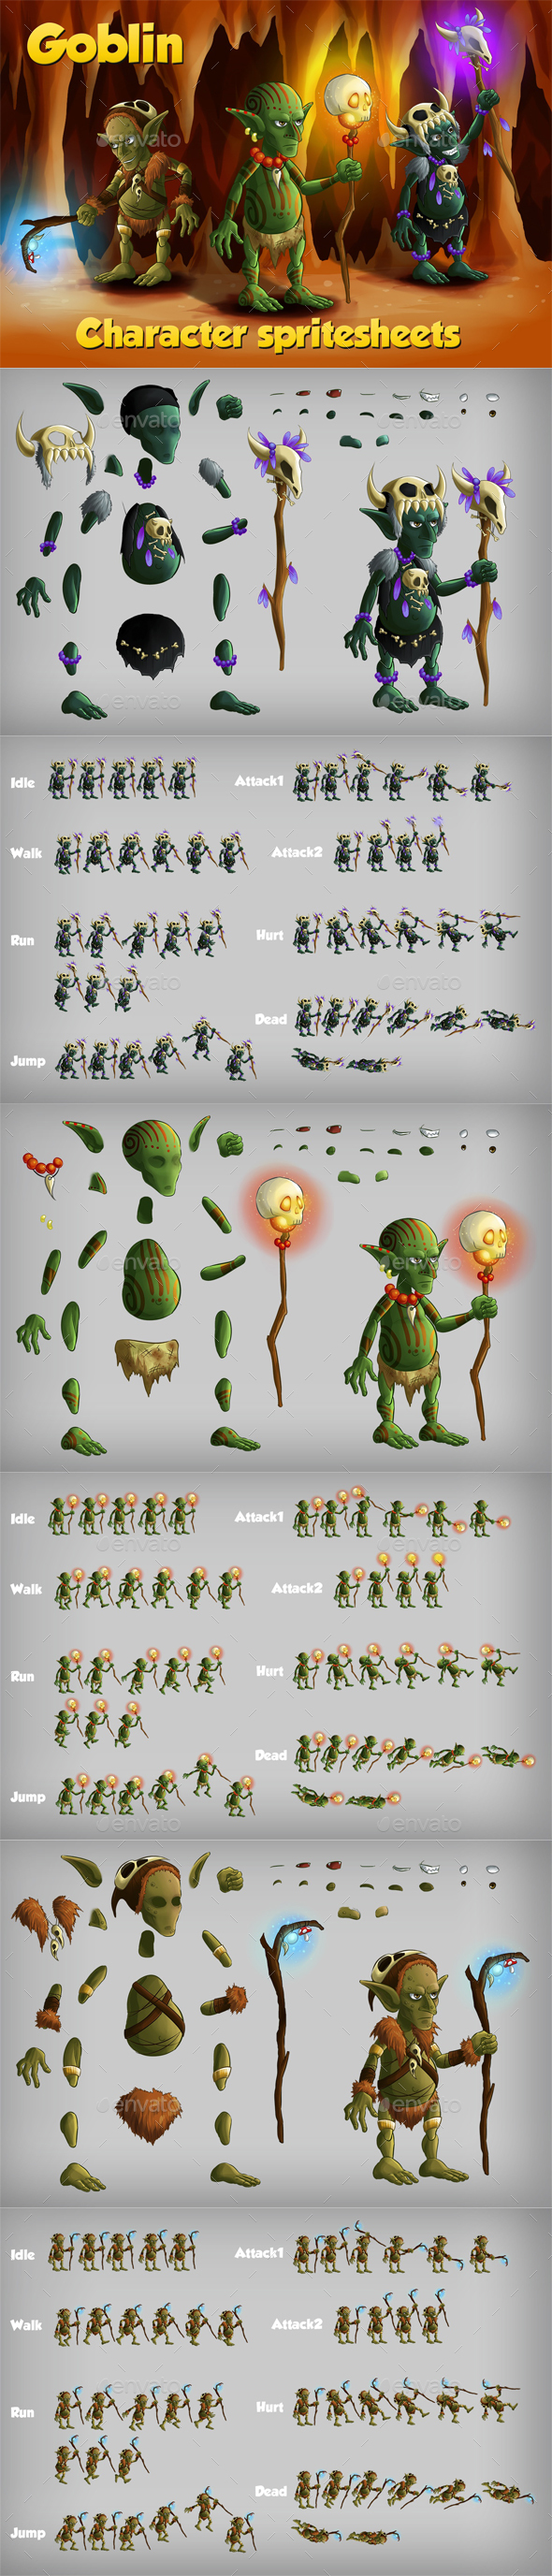 2D Game Goblin Character Sprite - Sprites Game Assets